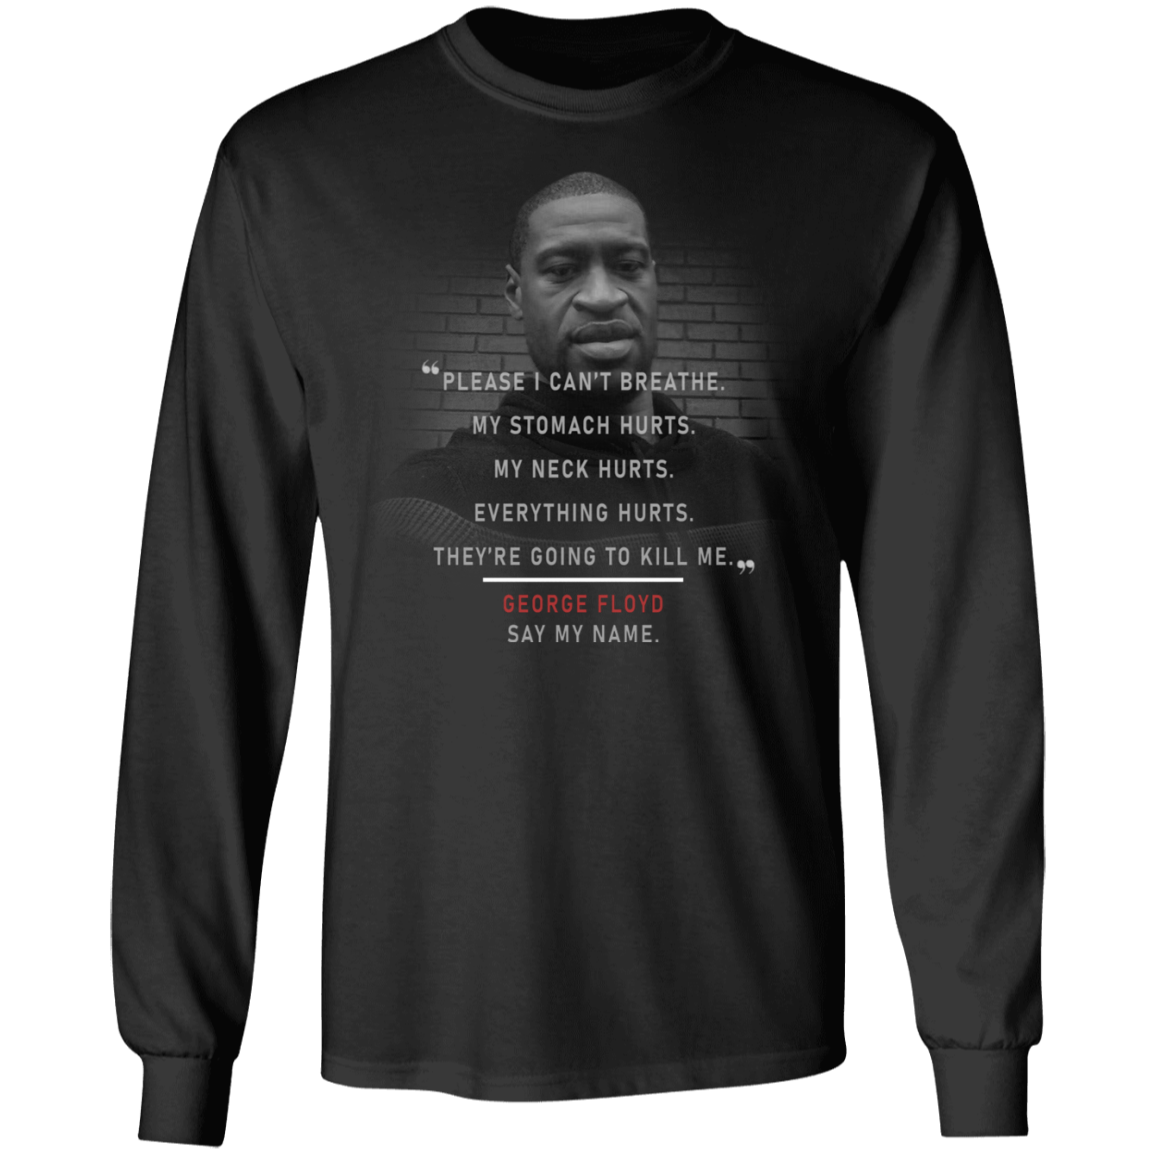 George Floyd Please I Can't Breathe Sweatshirt Justice For George Protest Blm